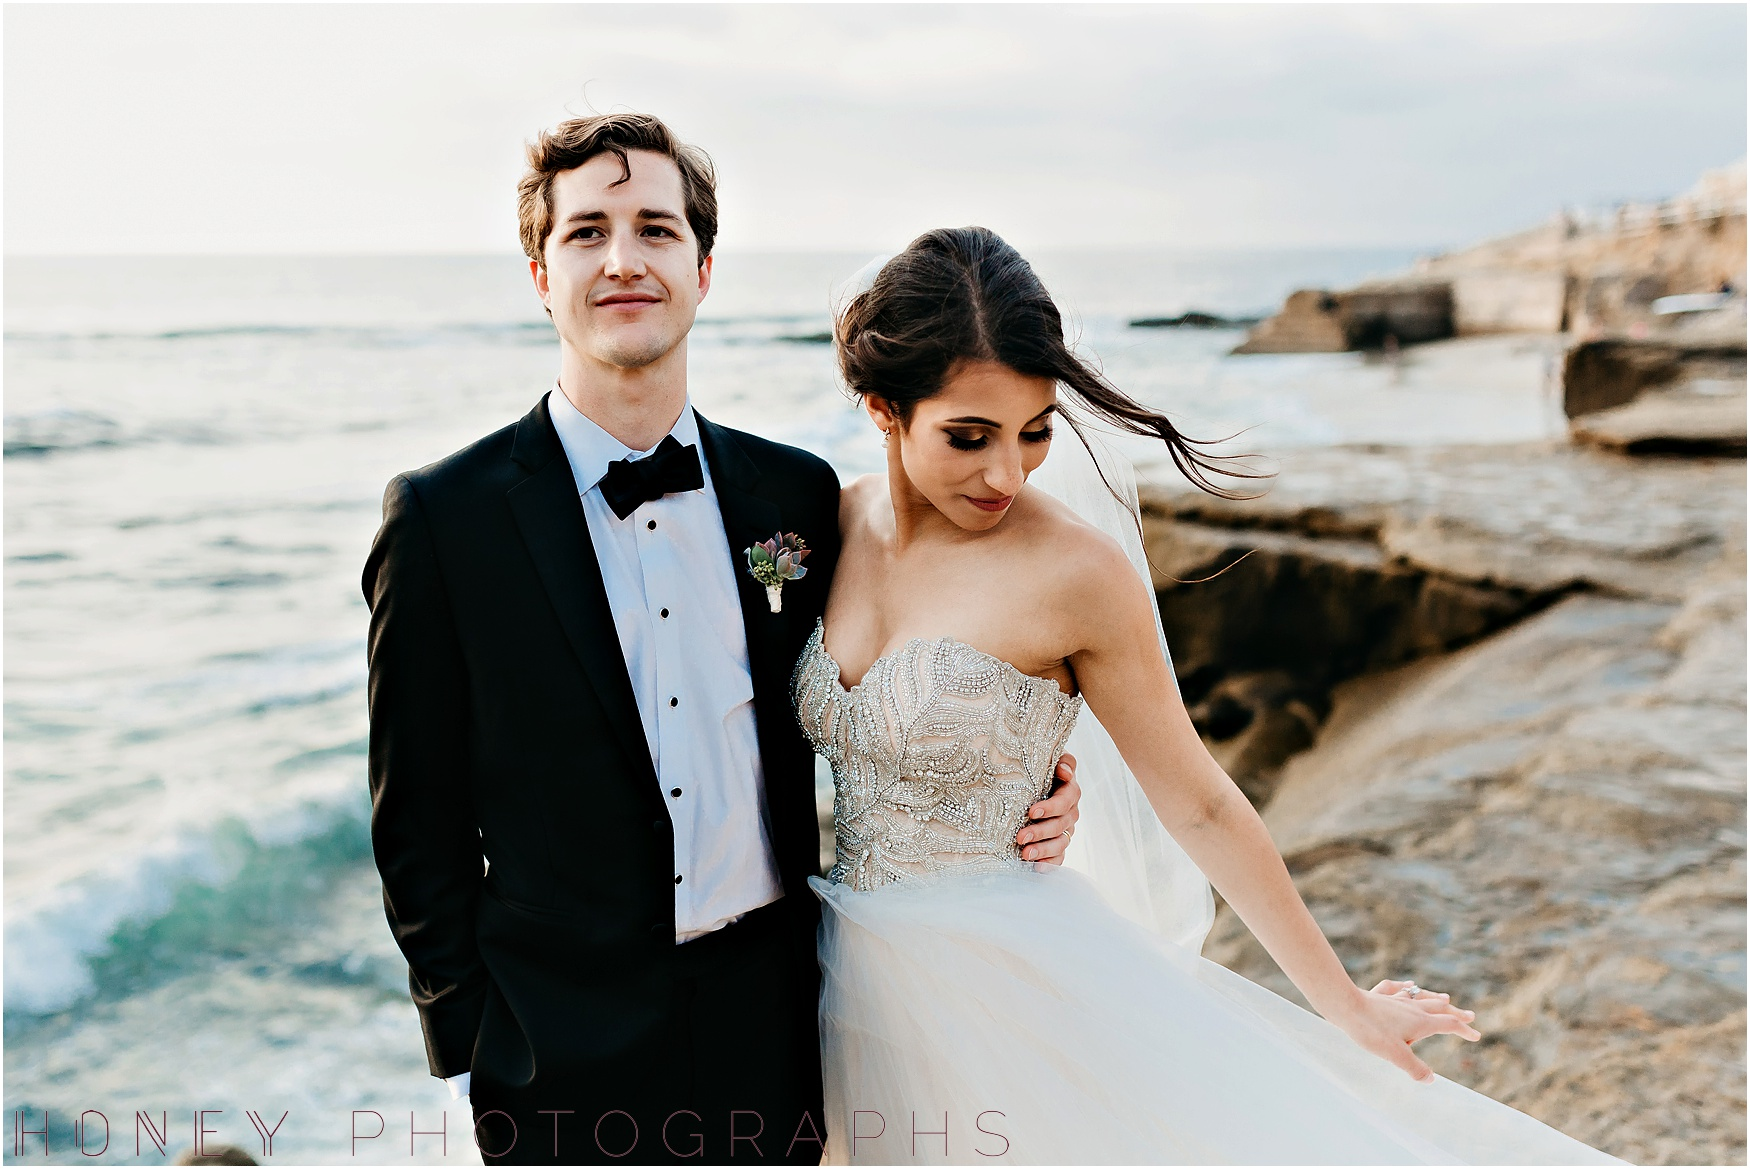 la_jolla_timeless_classic_elegant_cliffs_beach_black_tie_wedding043.jpg